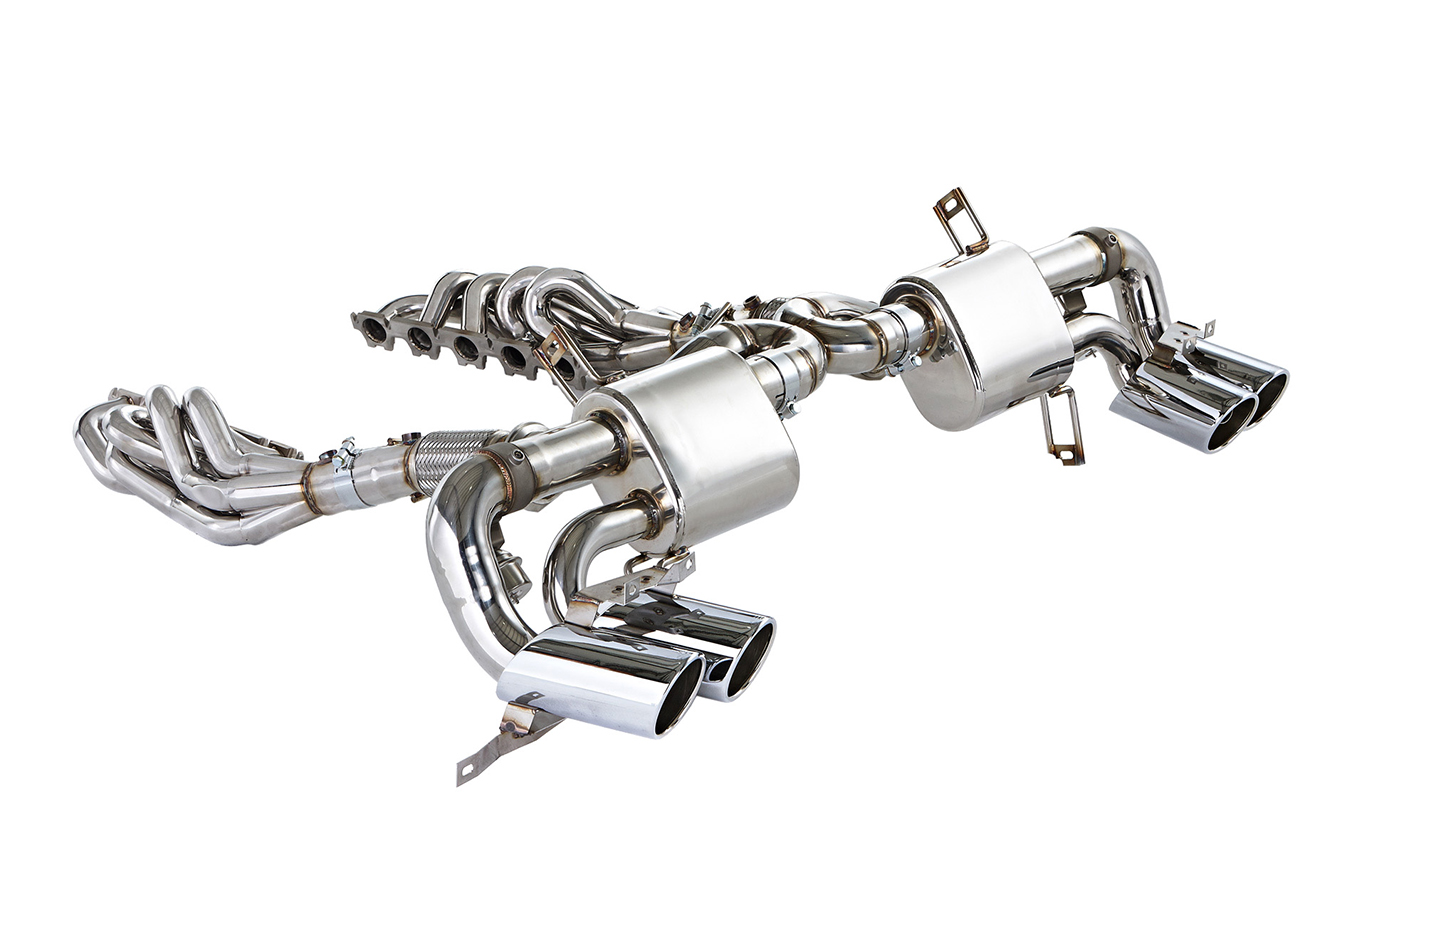 IPE Stainless Steel Valvetronic Exhaust System with Remote